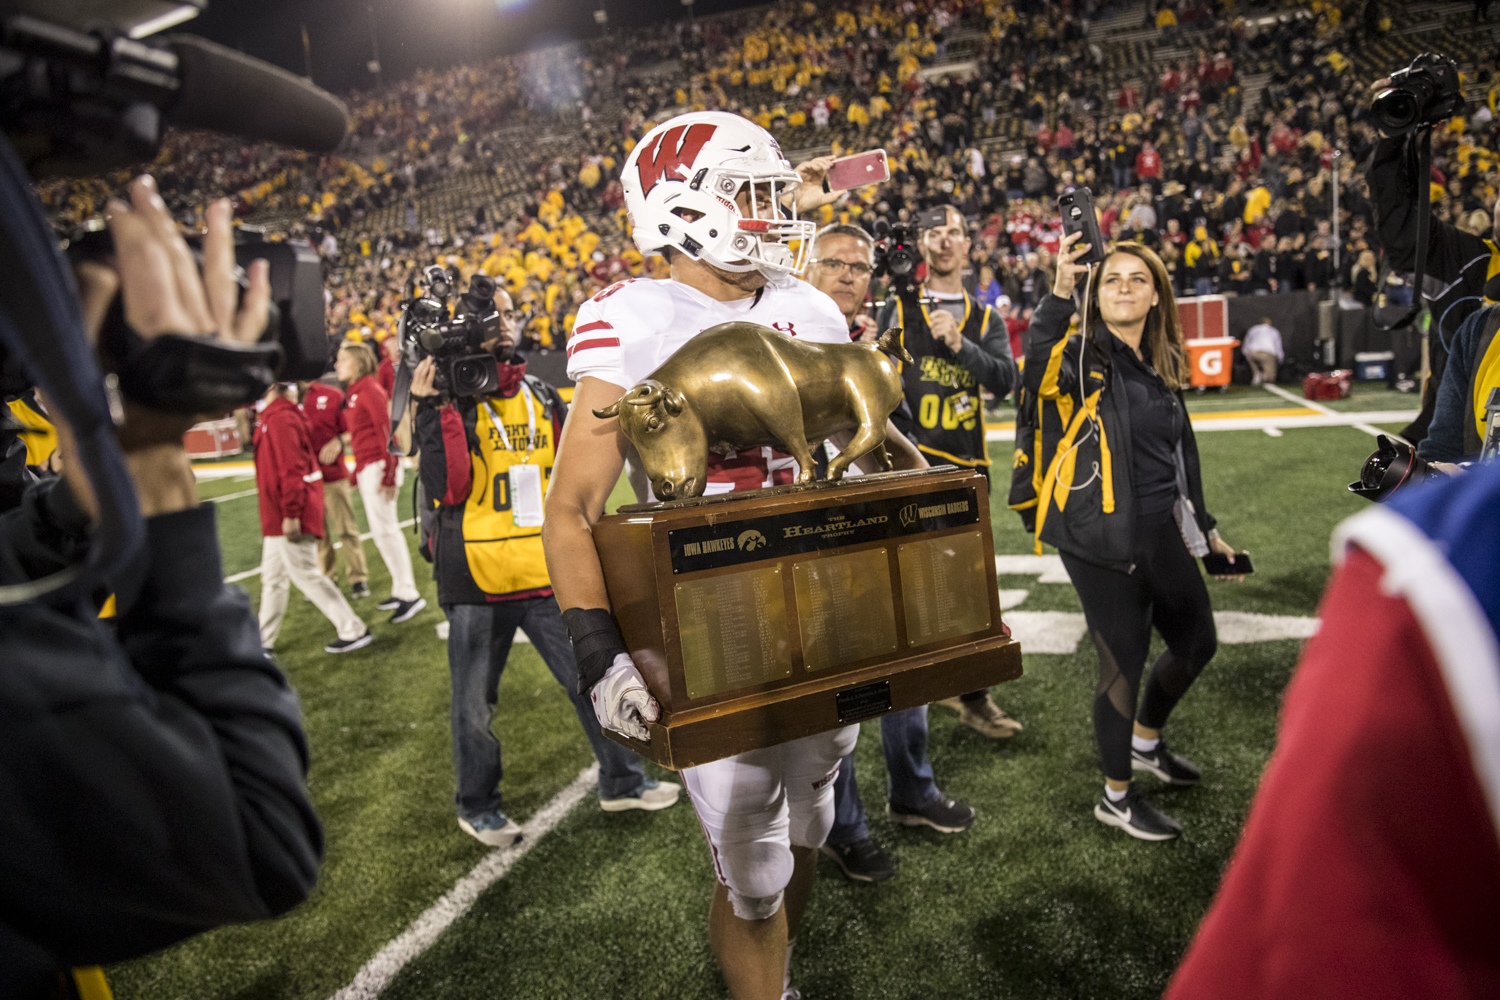 Wisconsin+full+back+Alec+Ingold+carries+the+Heartland+Tropy+off+the+field+during+Iowa%27s+game+against+Wisconsin+at+Kinnick+Stadium+on+Saturday%2C+September+22%2C+2018.+The+Badgers+defeated+the+Hawkeyes+28-17.